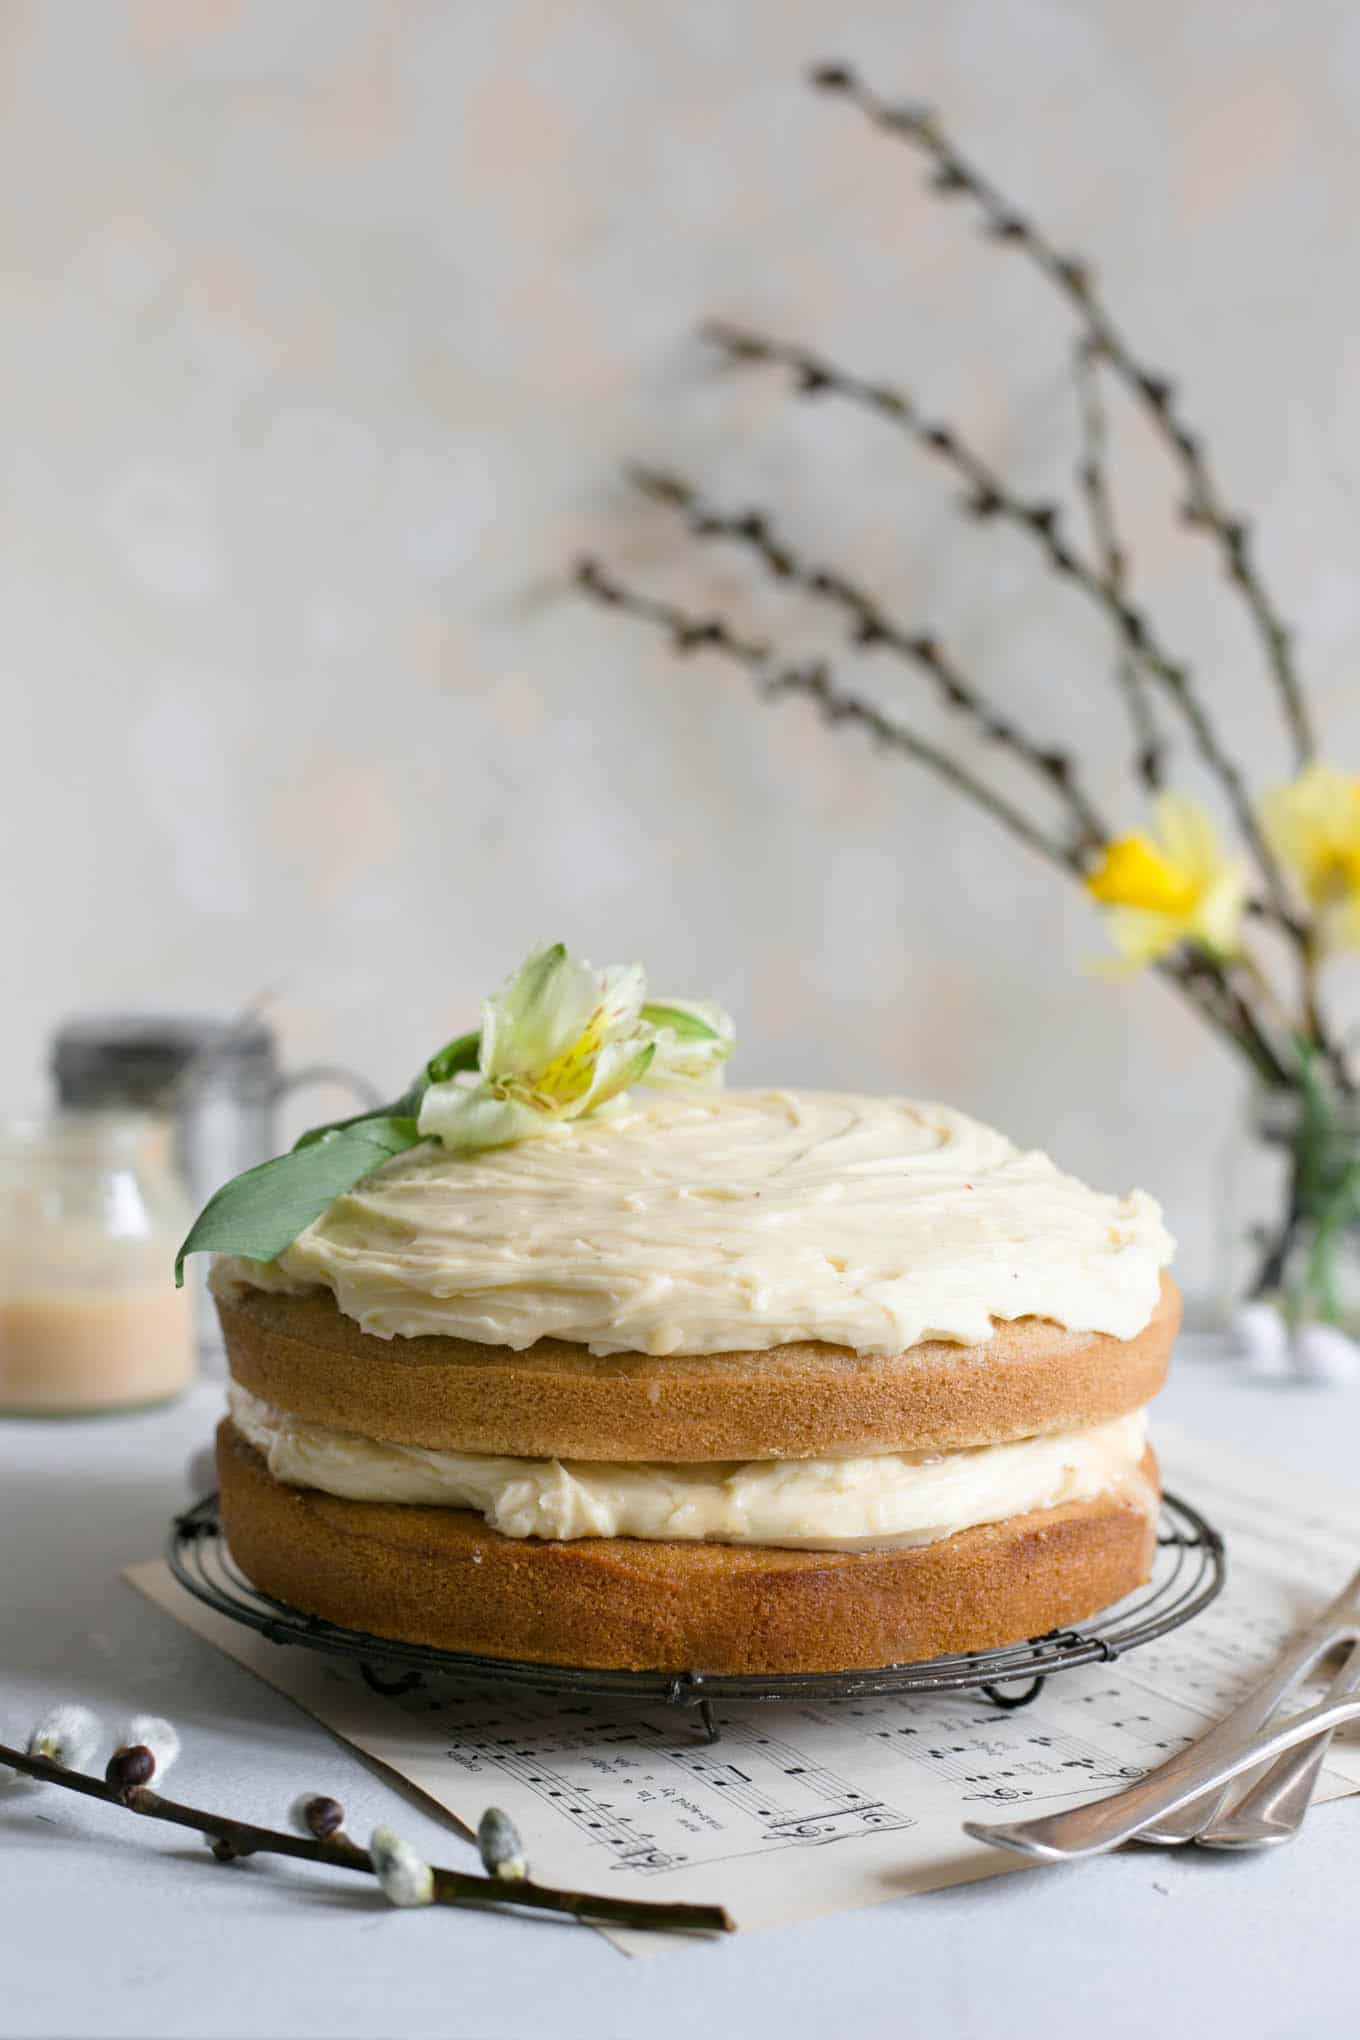 White chocolate and blood orange curd vegan cake, perfect for any occasion! #dairyfree #cake #vegan #foodphotography | via @annabanana.co